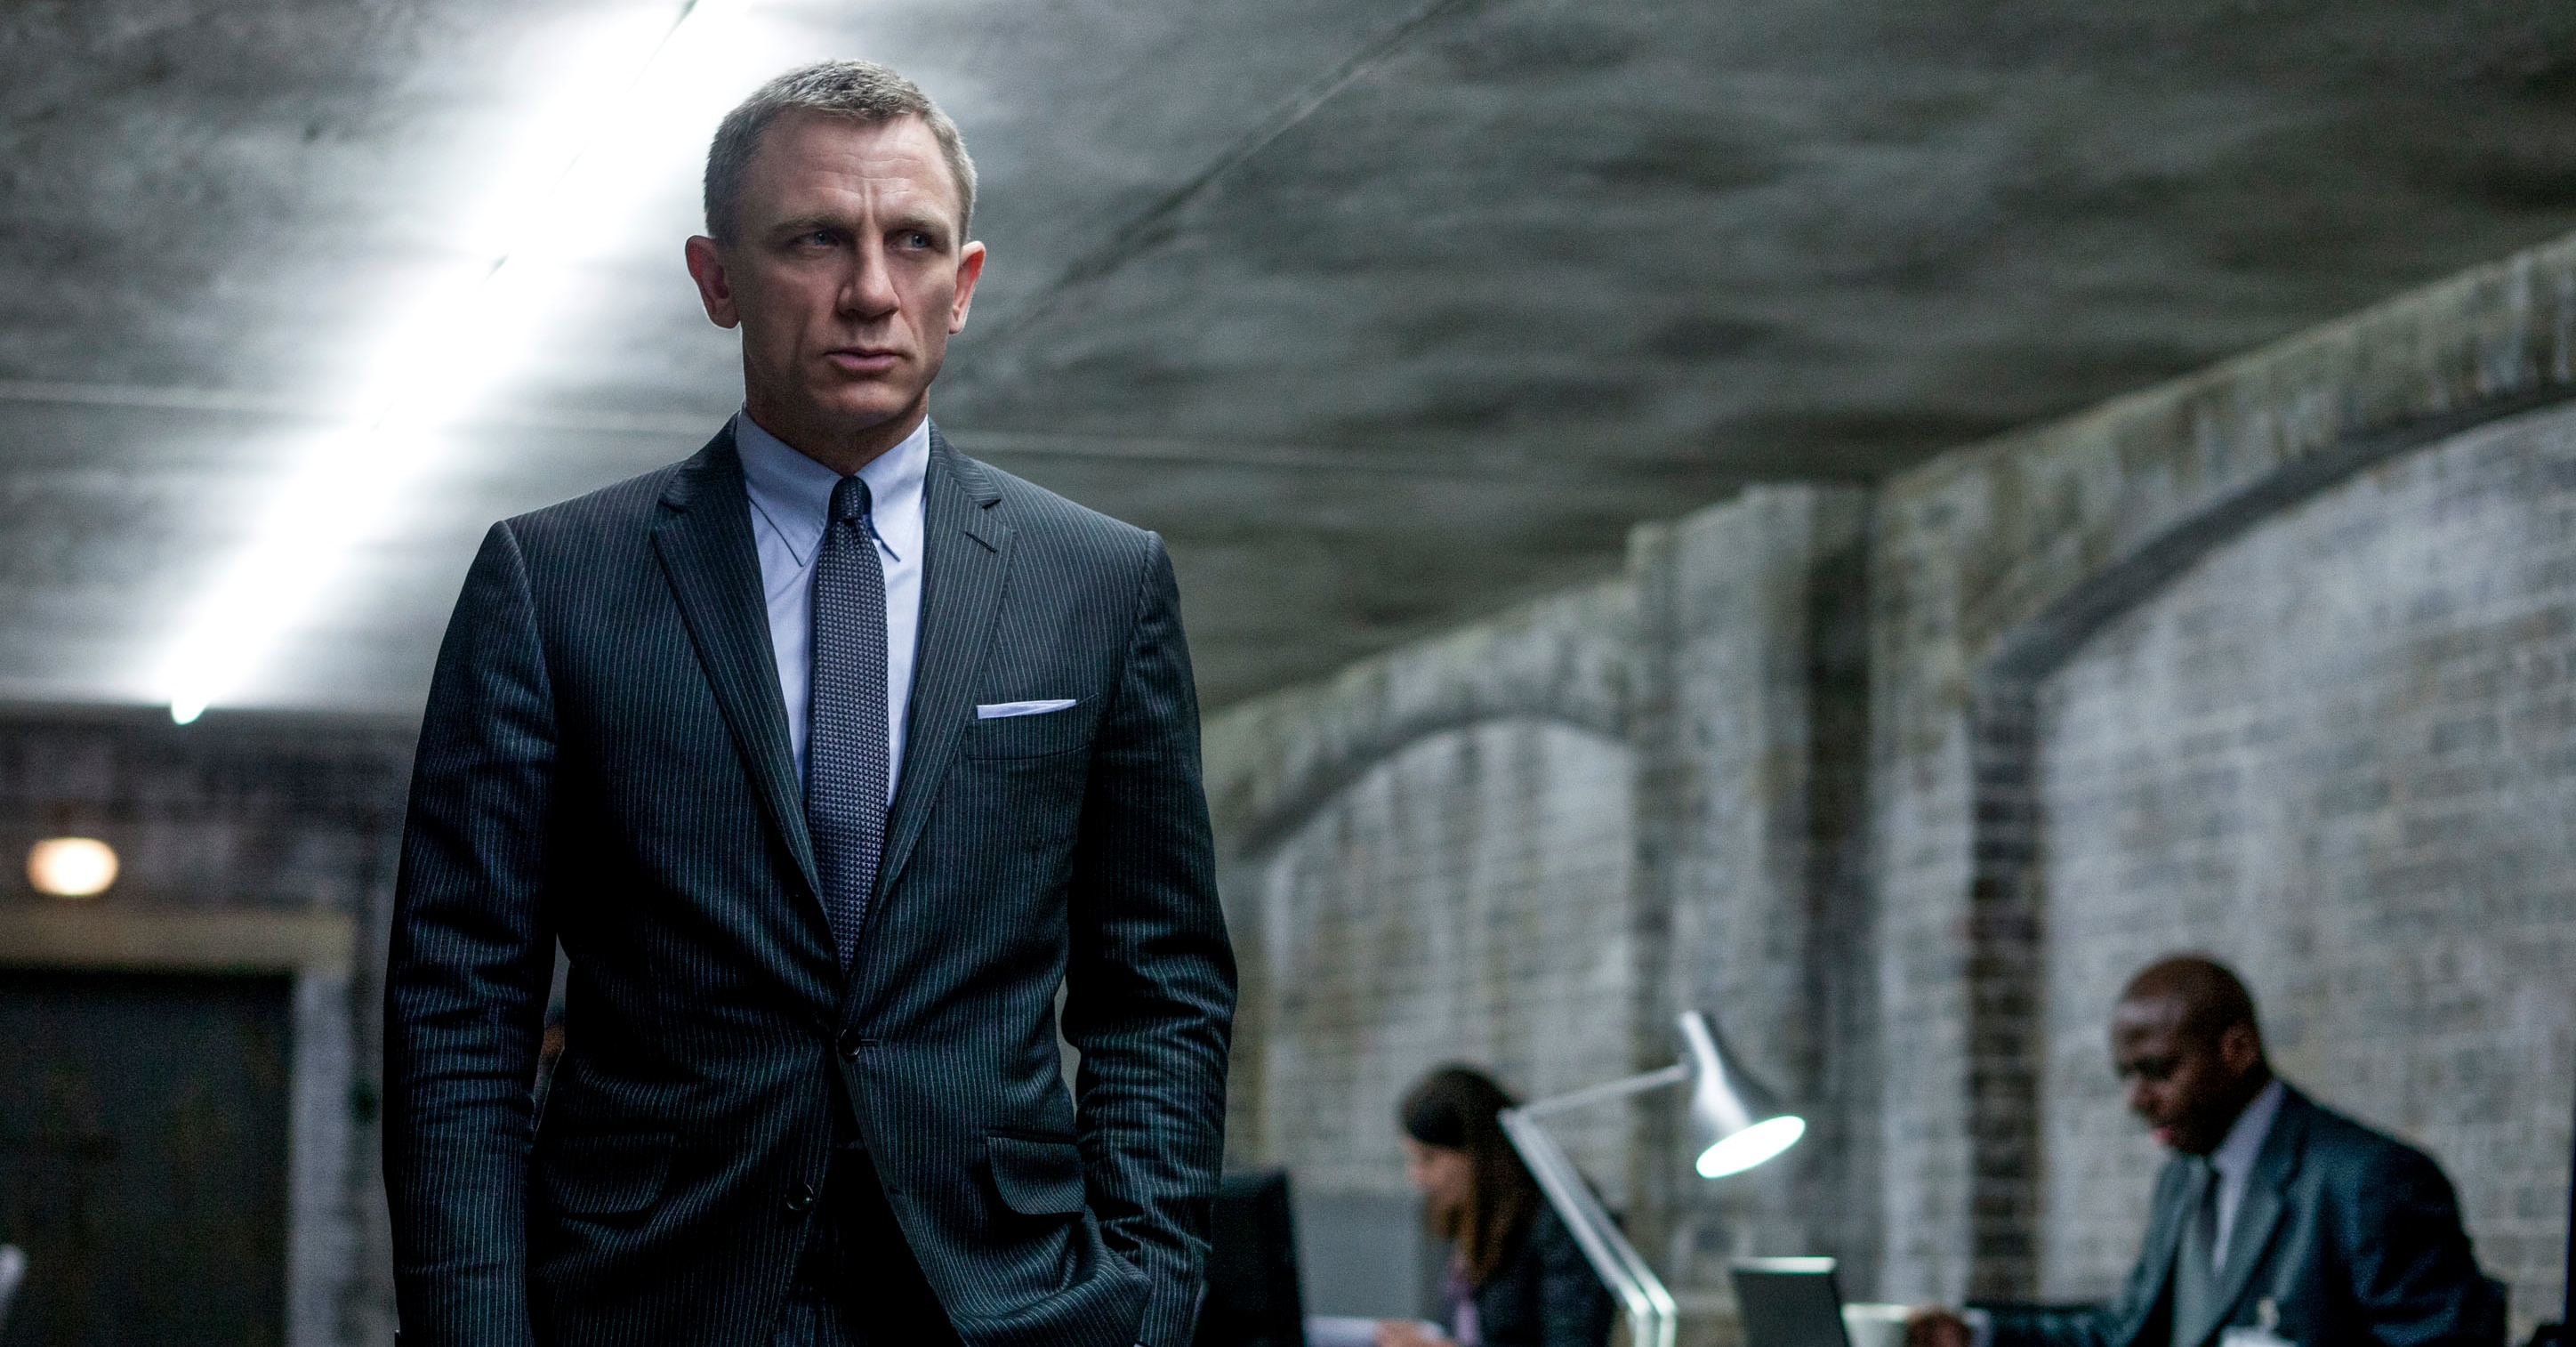 https://goldenidol.files.wordpress.com/2012/12/skyfall.jpeg